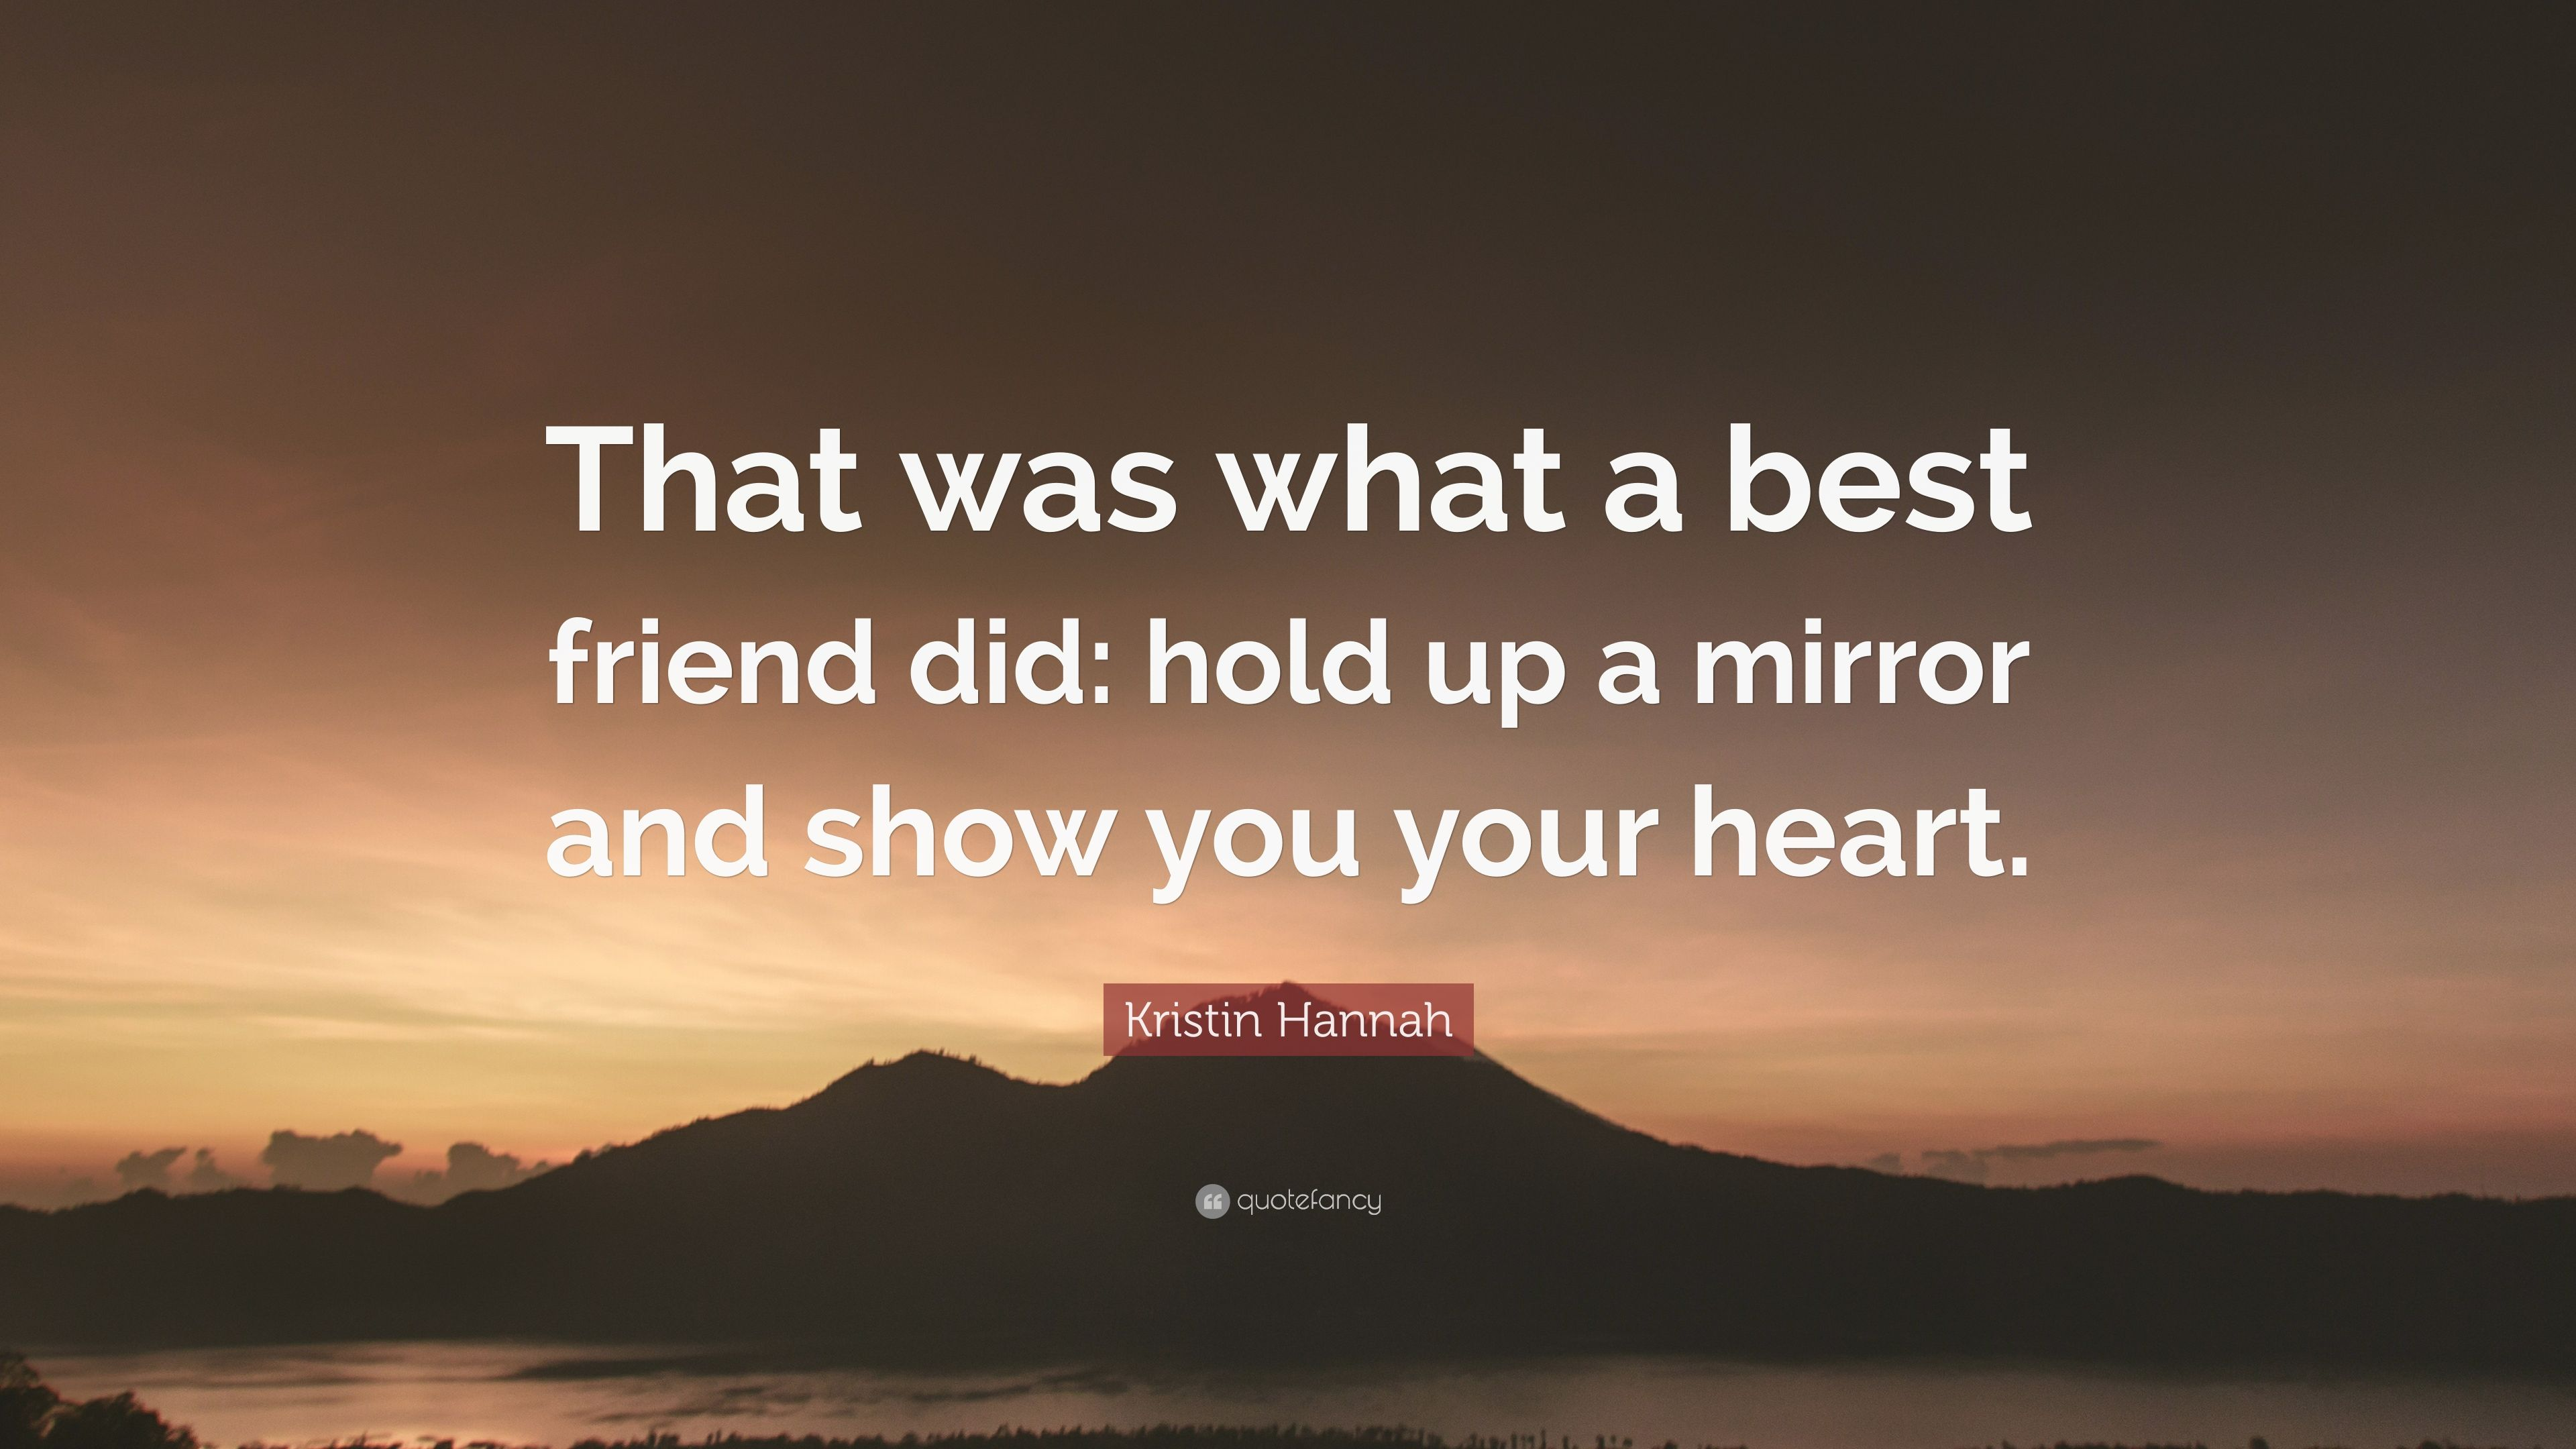 Kristin Hannah Quote That Was What A Best Friend Did Hold Up